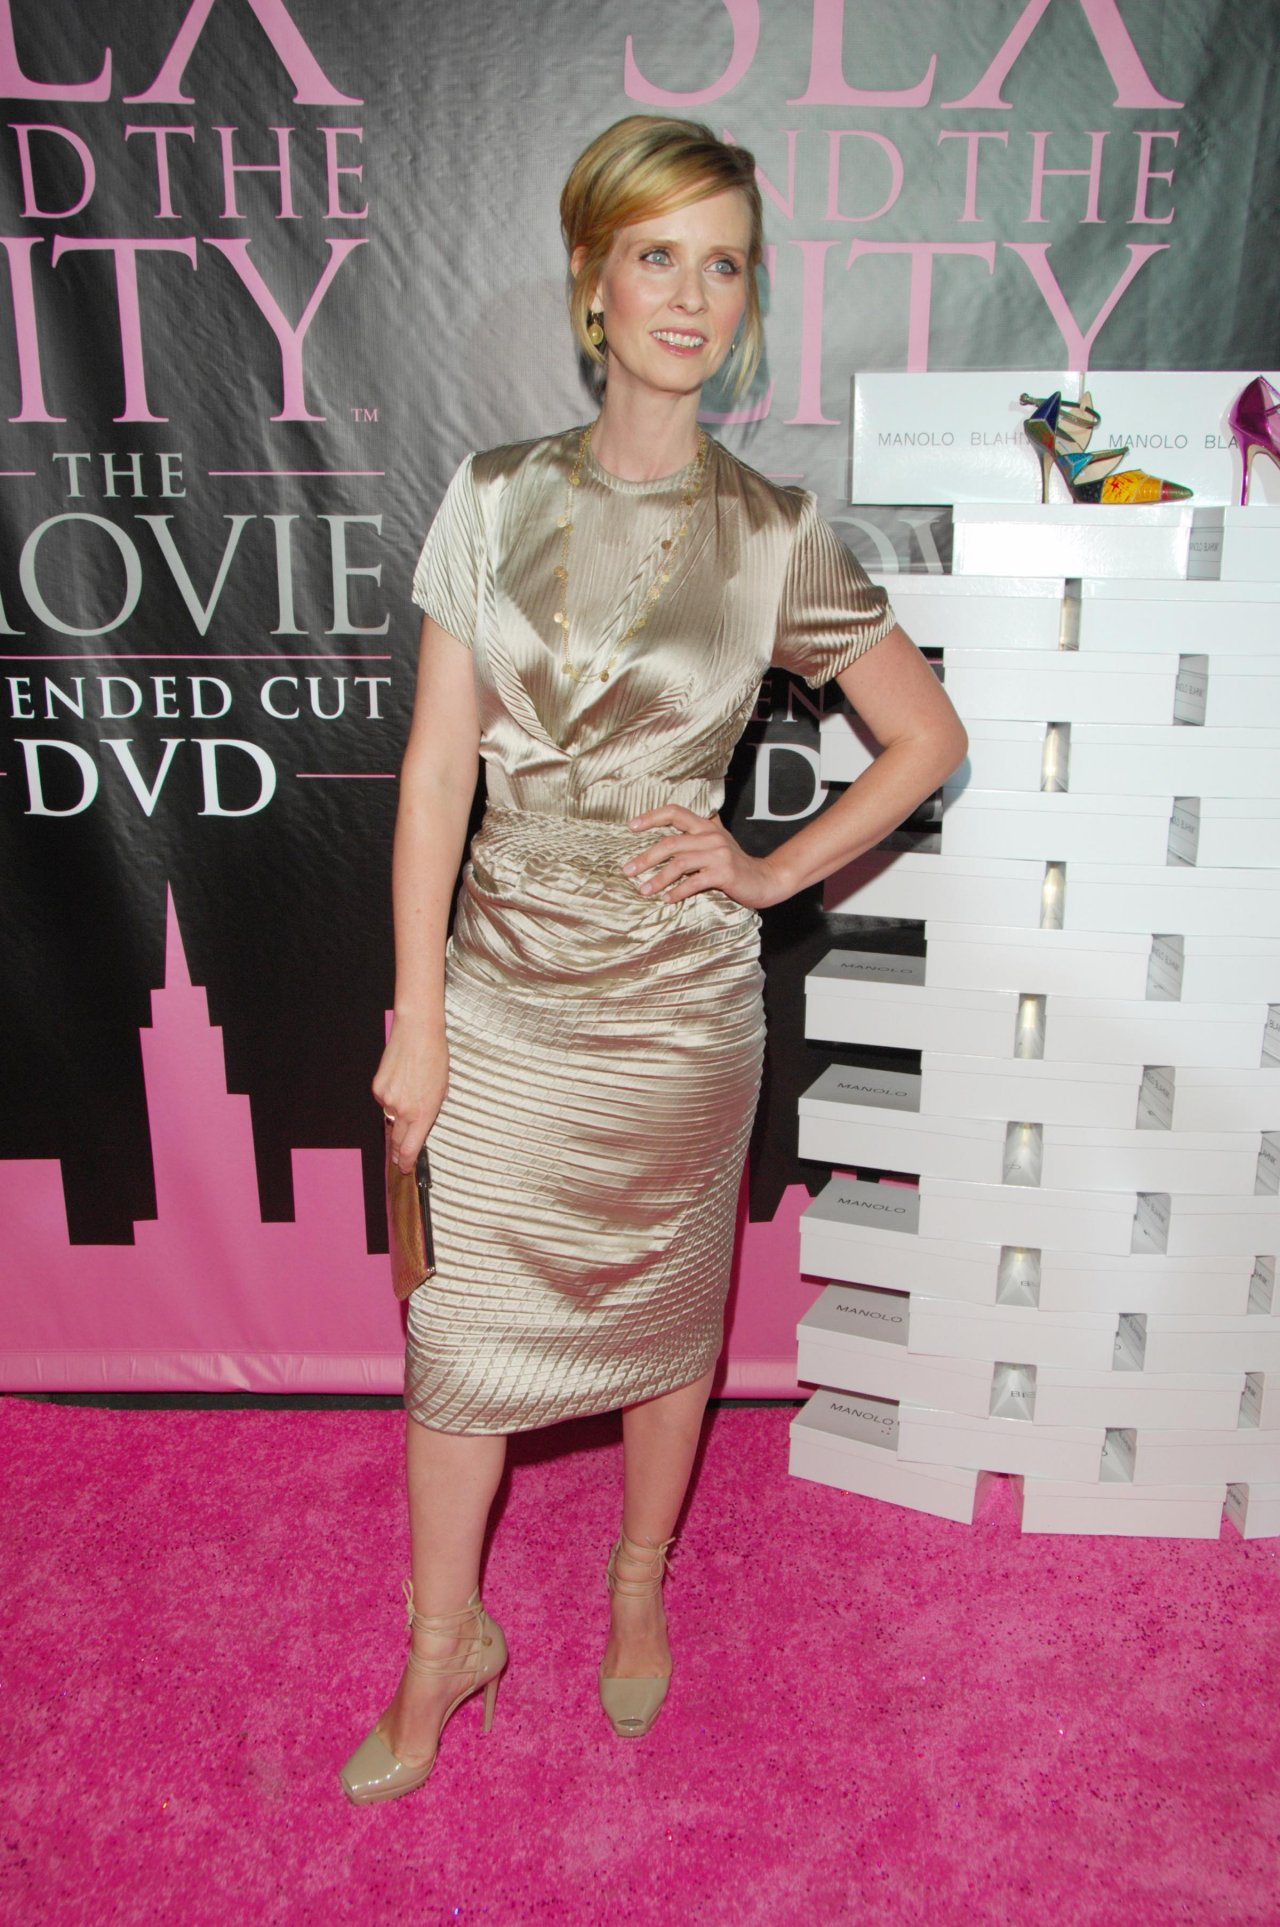 cynthia nixon wallpaper - photo #43